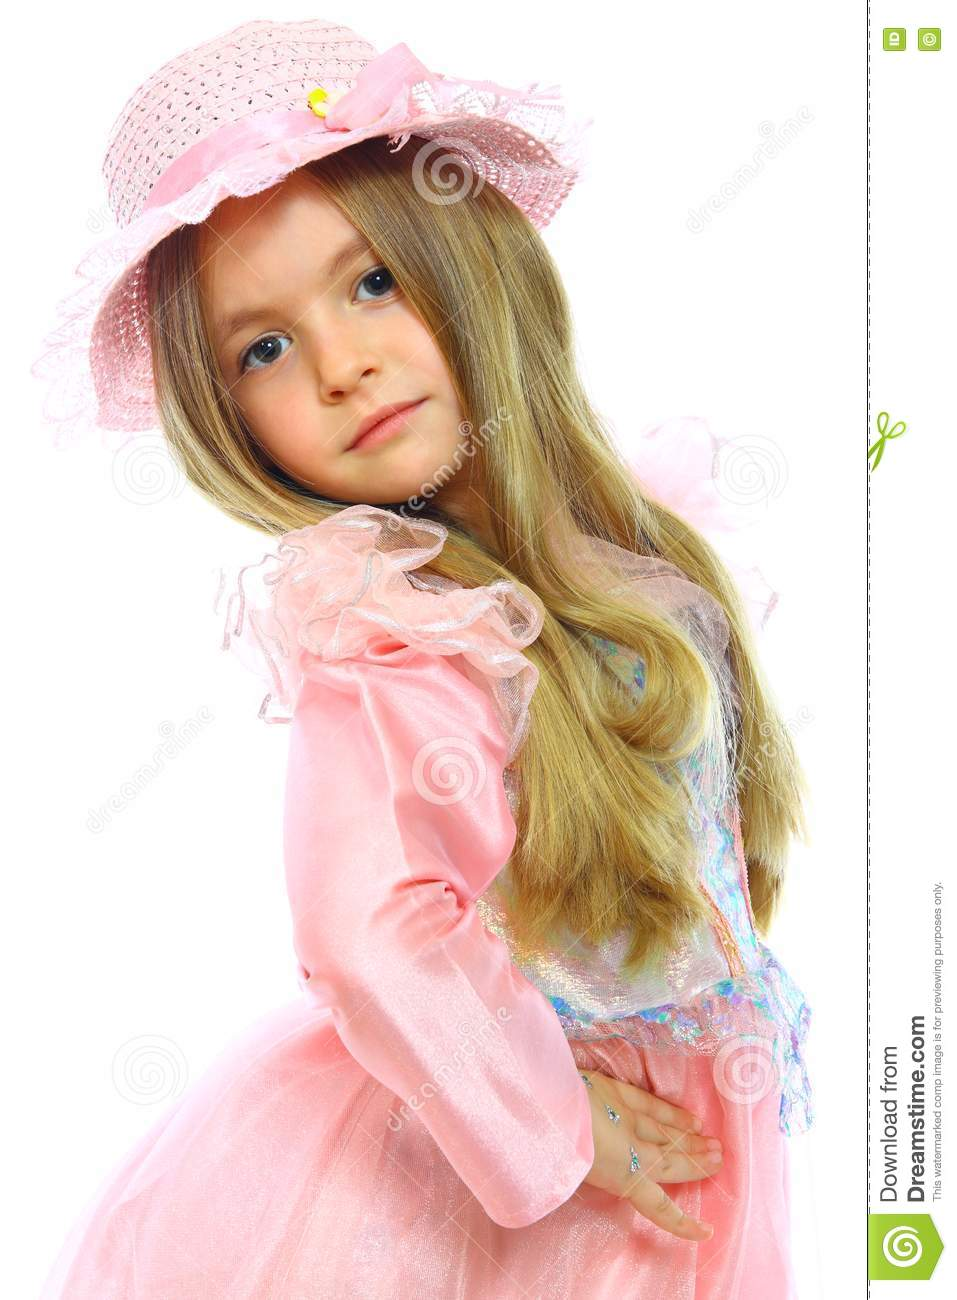 Little Girl Posing Royalty Free Stock Photos - Image: 18643398: dreamstime.com/royalty-free-stock-photos-little-girl-posing...